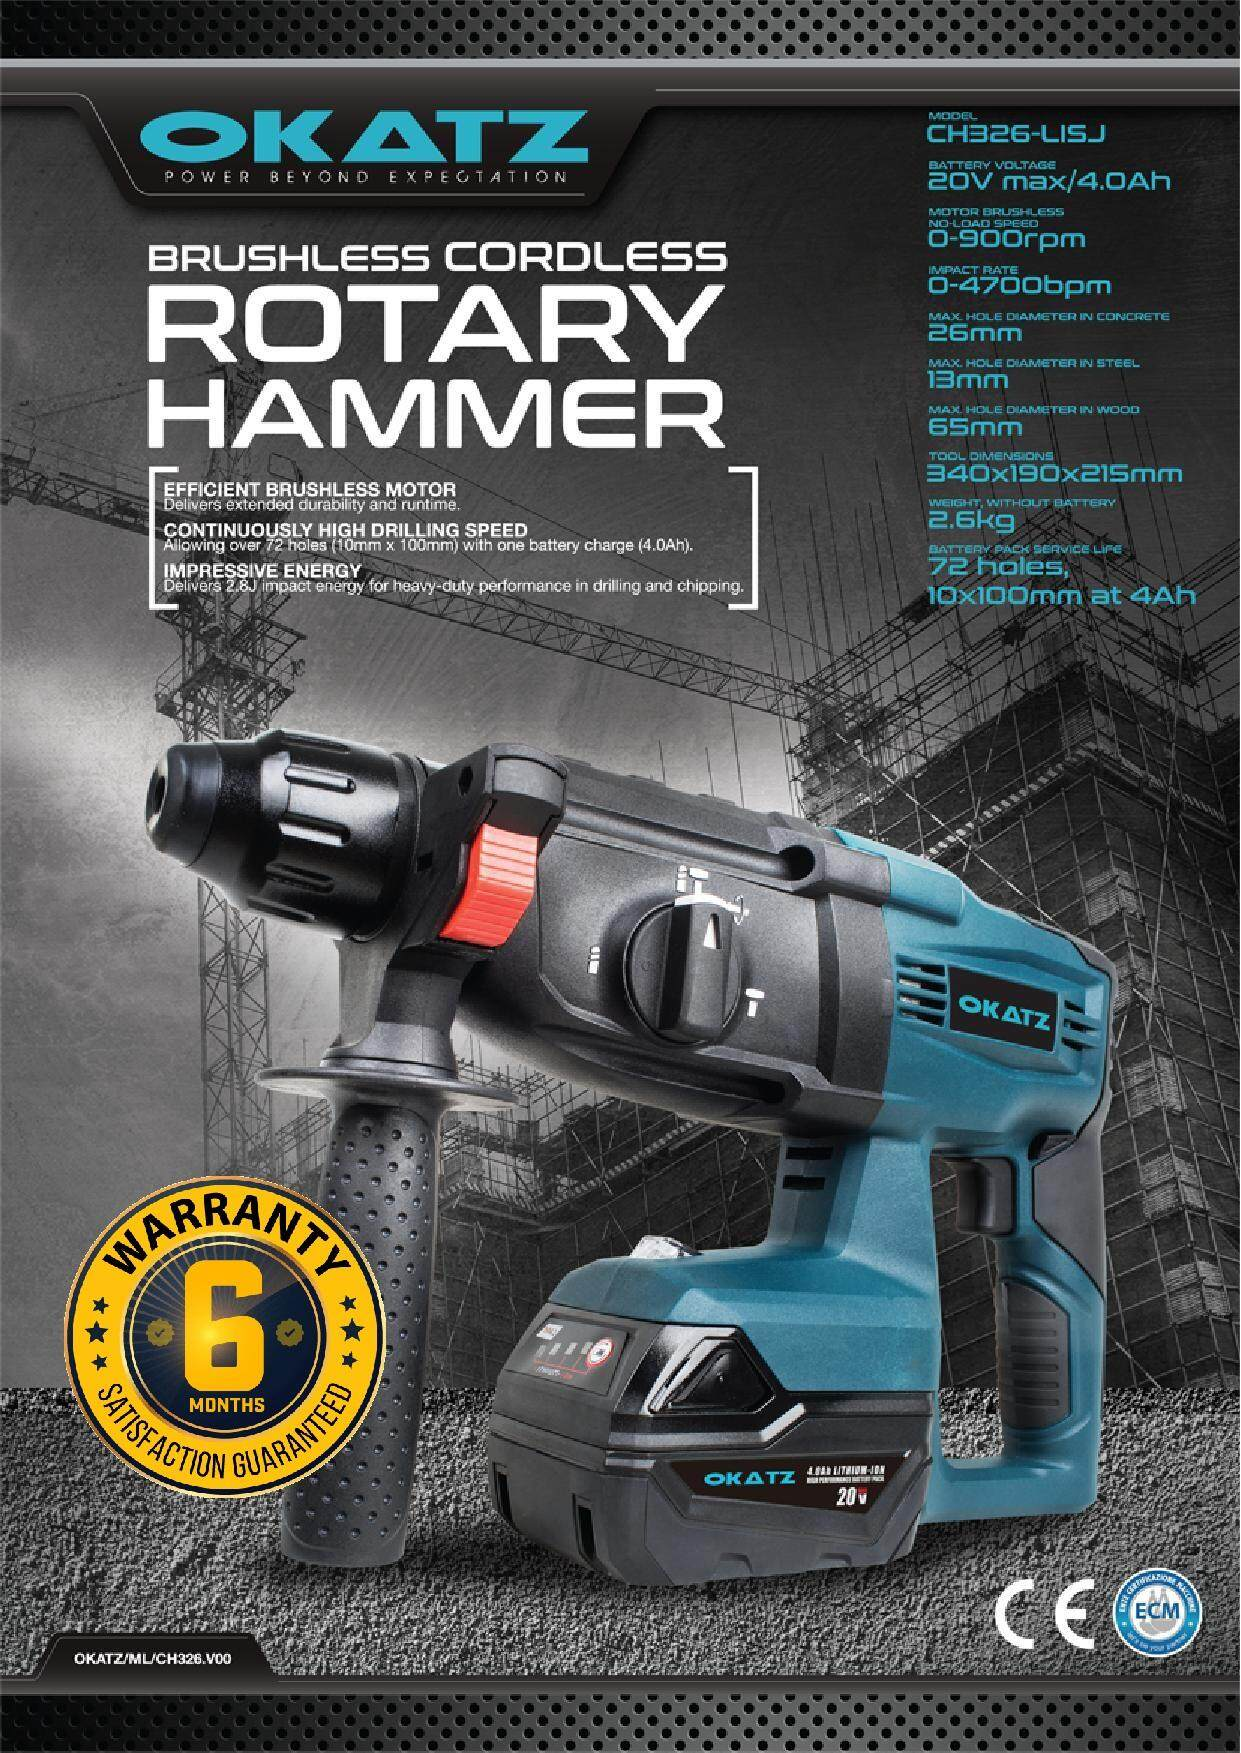 Okatz 20V 3-Mode Brushless Cordless Rotary Hammer